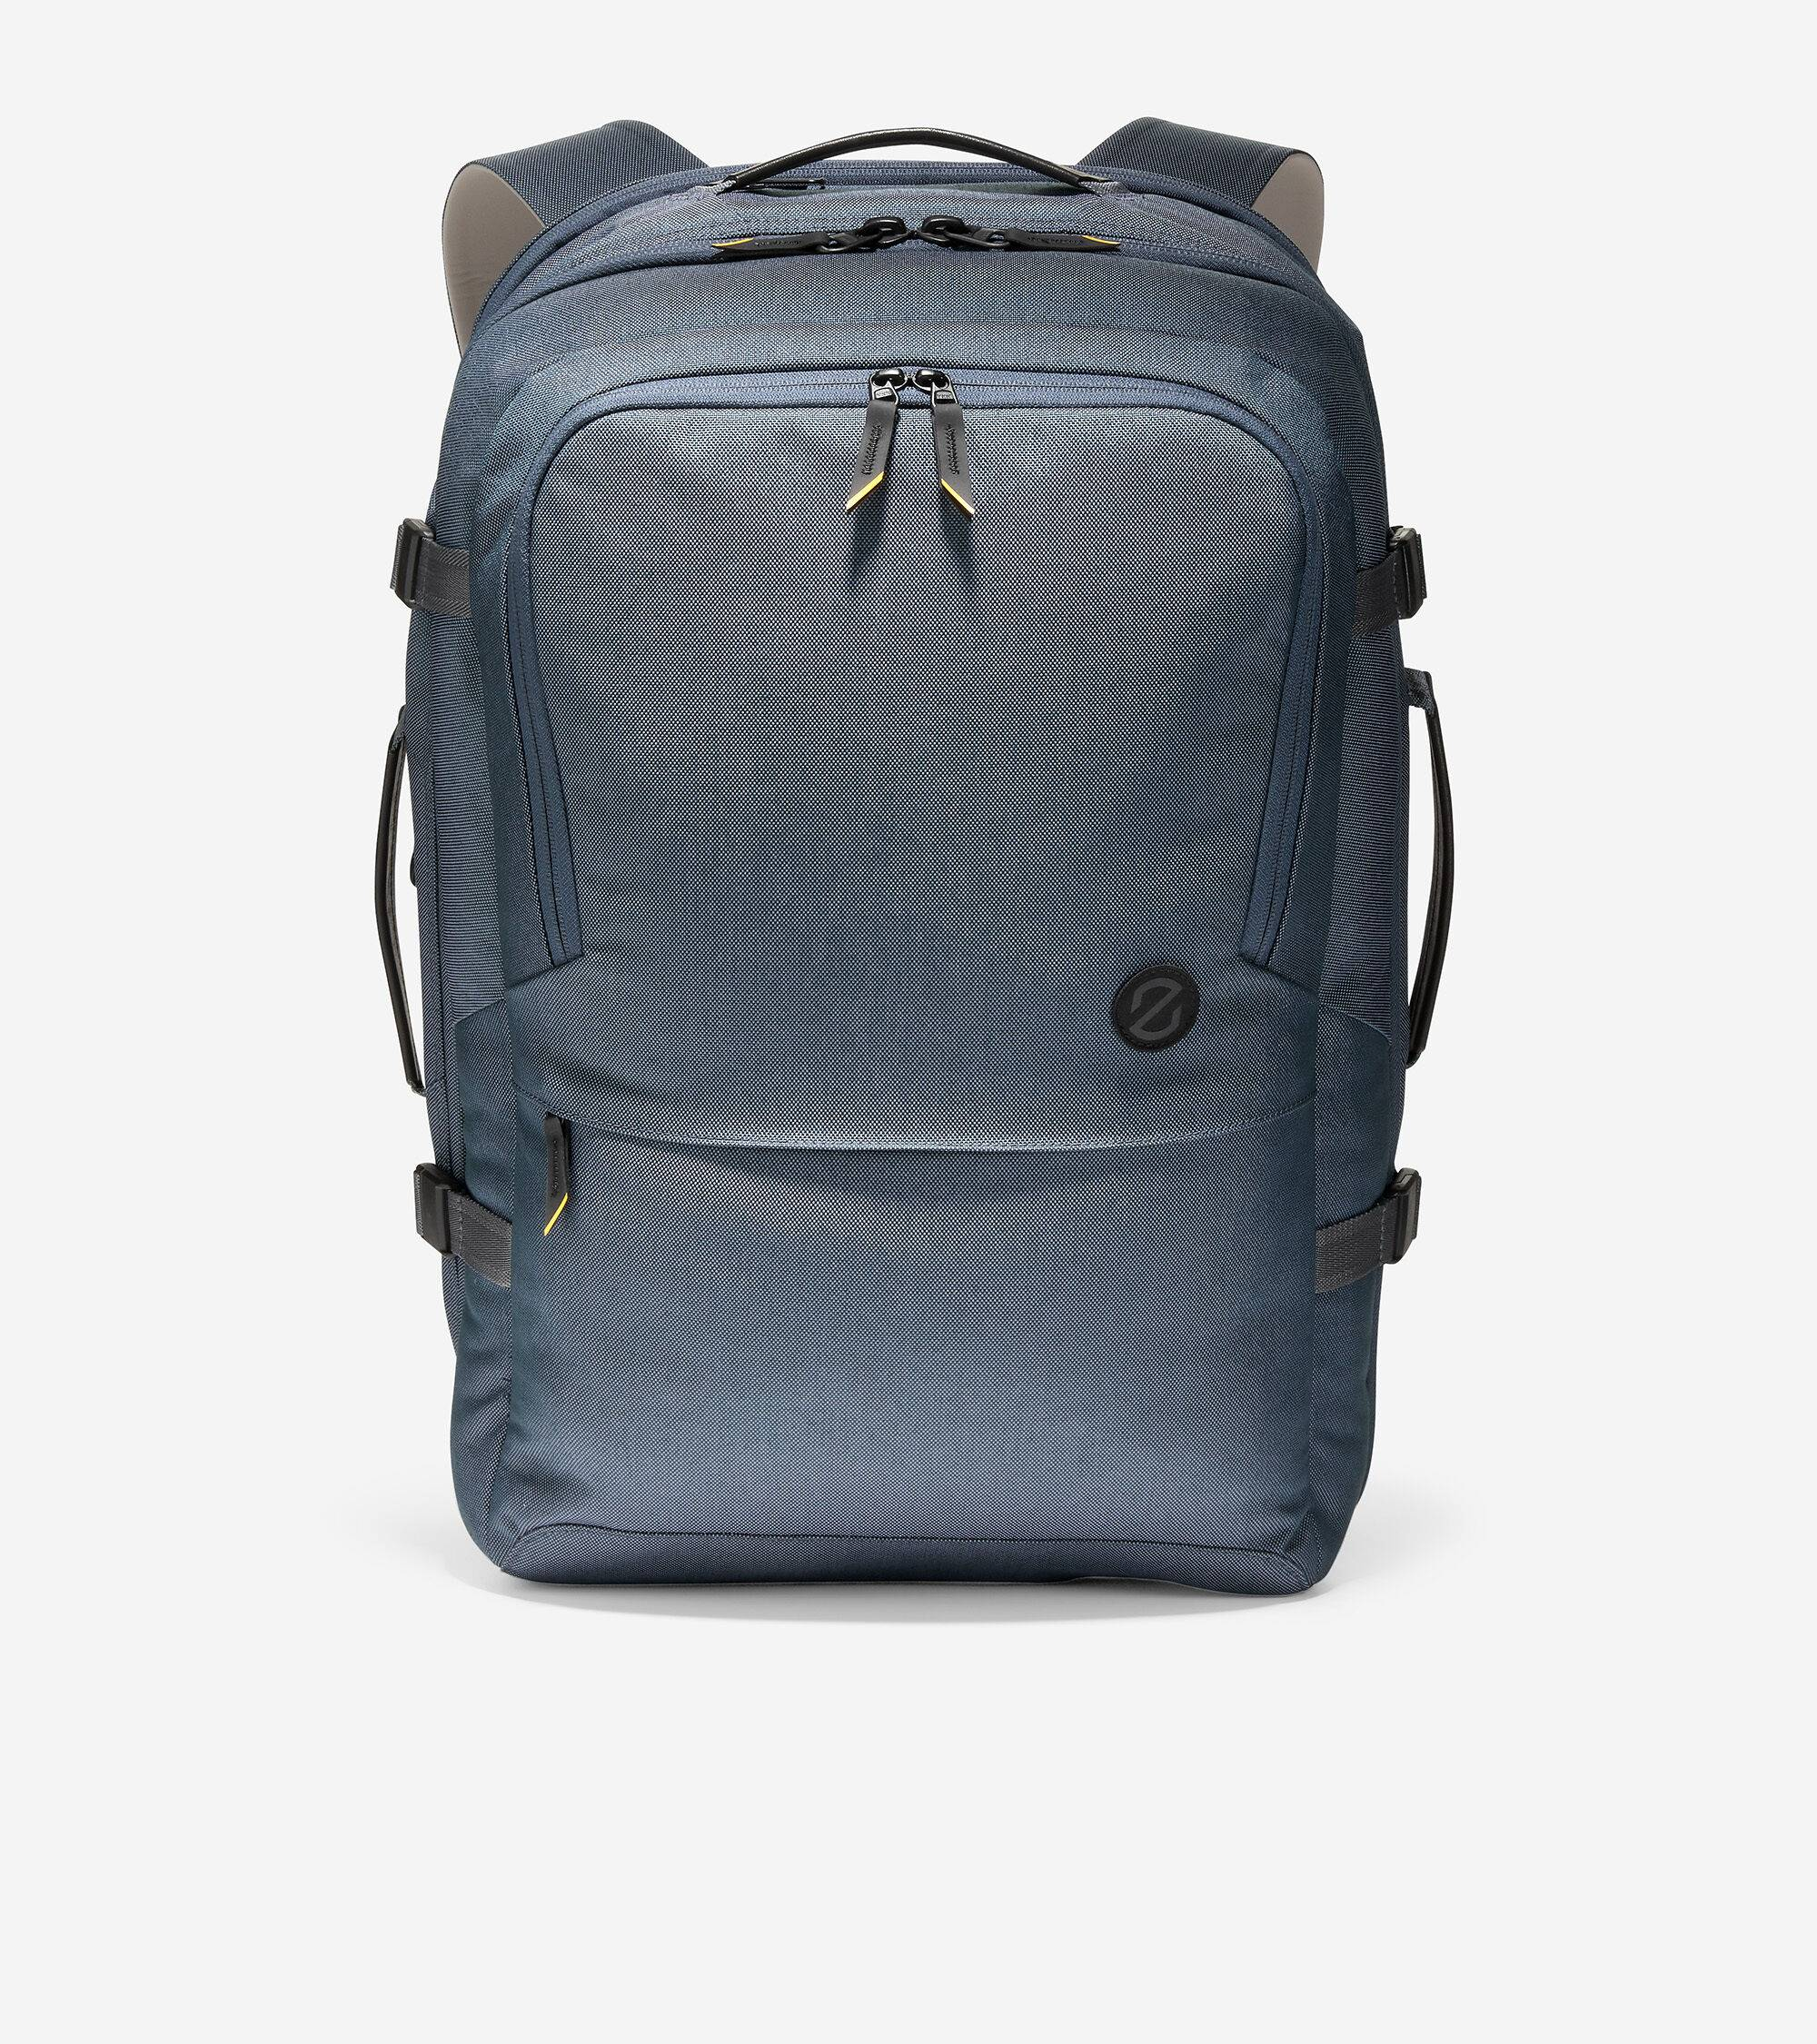 Cole Haan ZERØGRAND 48 HR Backpack - BLUE - Size: OSFA